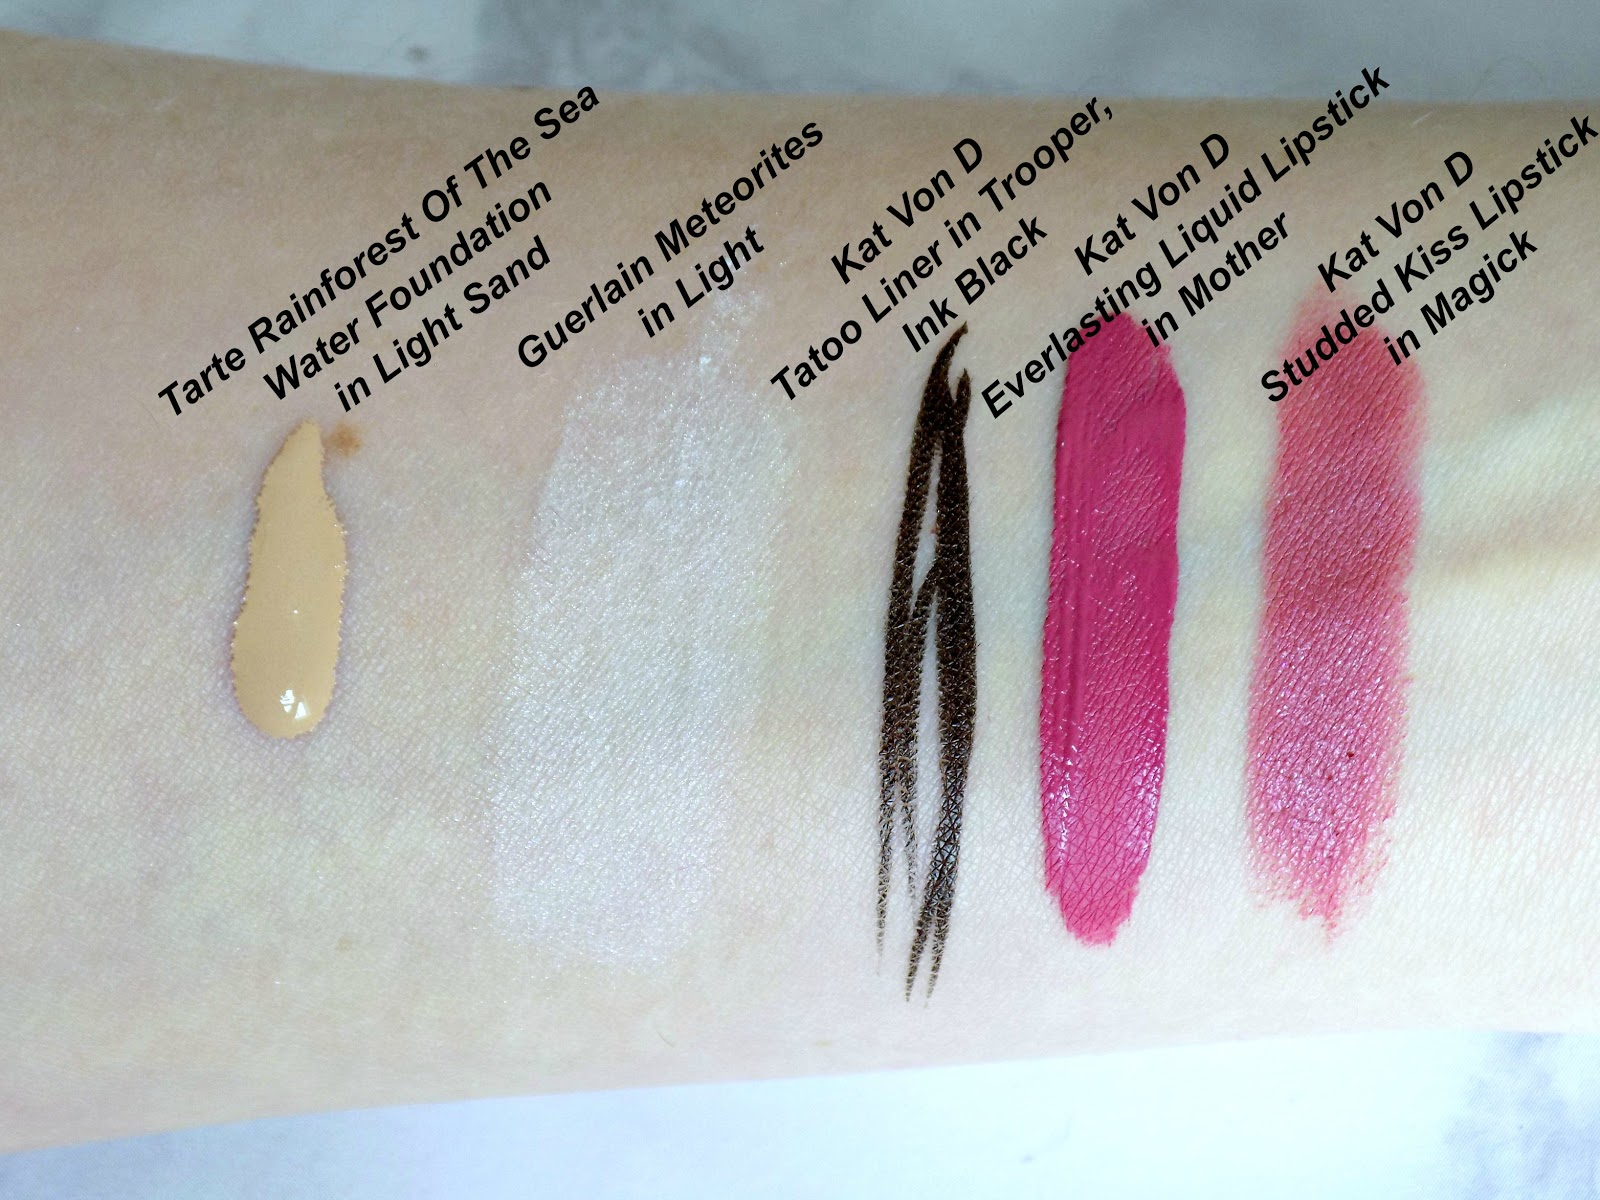 Sephora makeup haul swatches